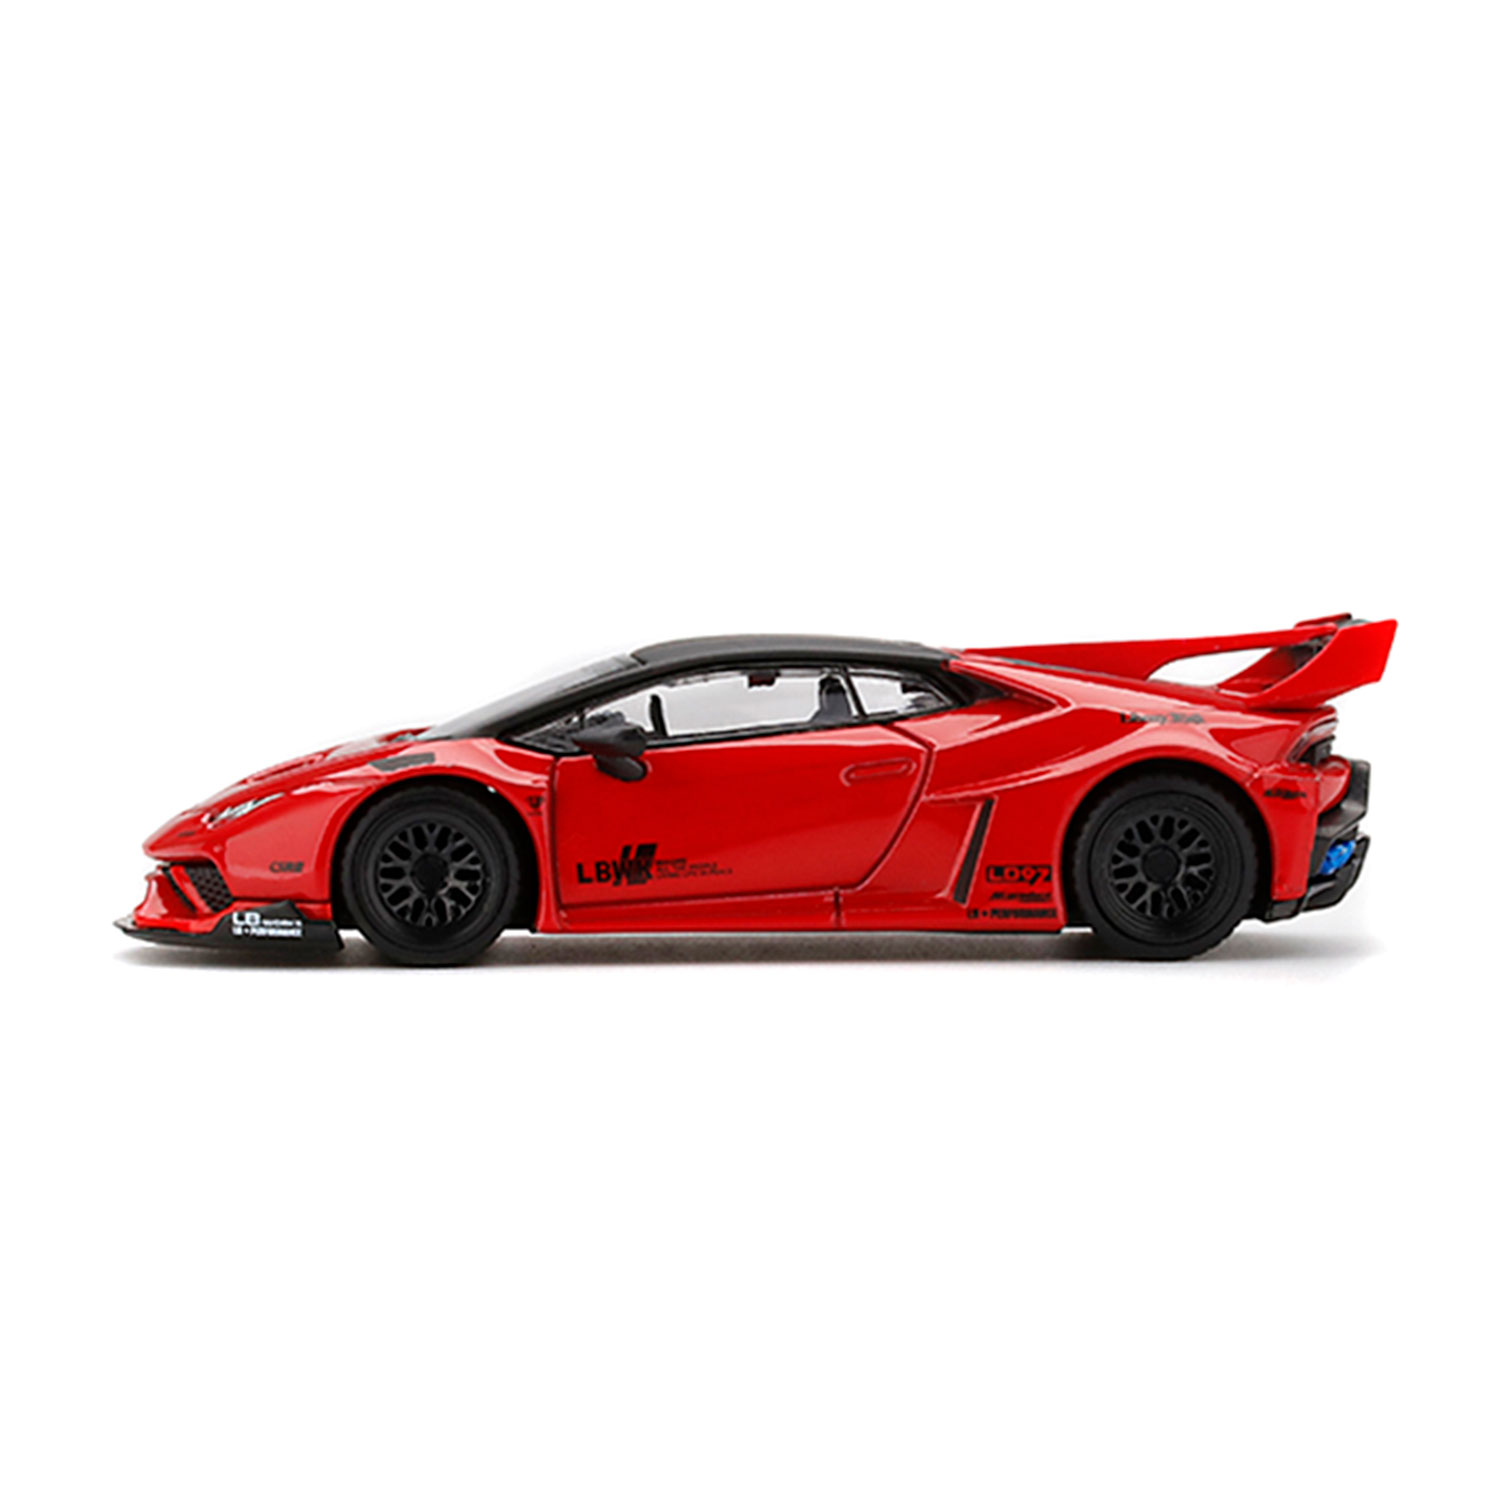 1/64 MINI GT LB-SILHOETTE Huracan Red